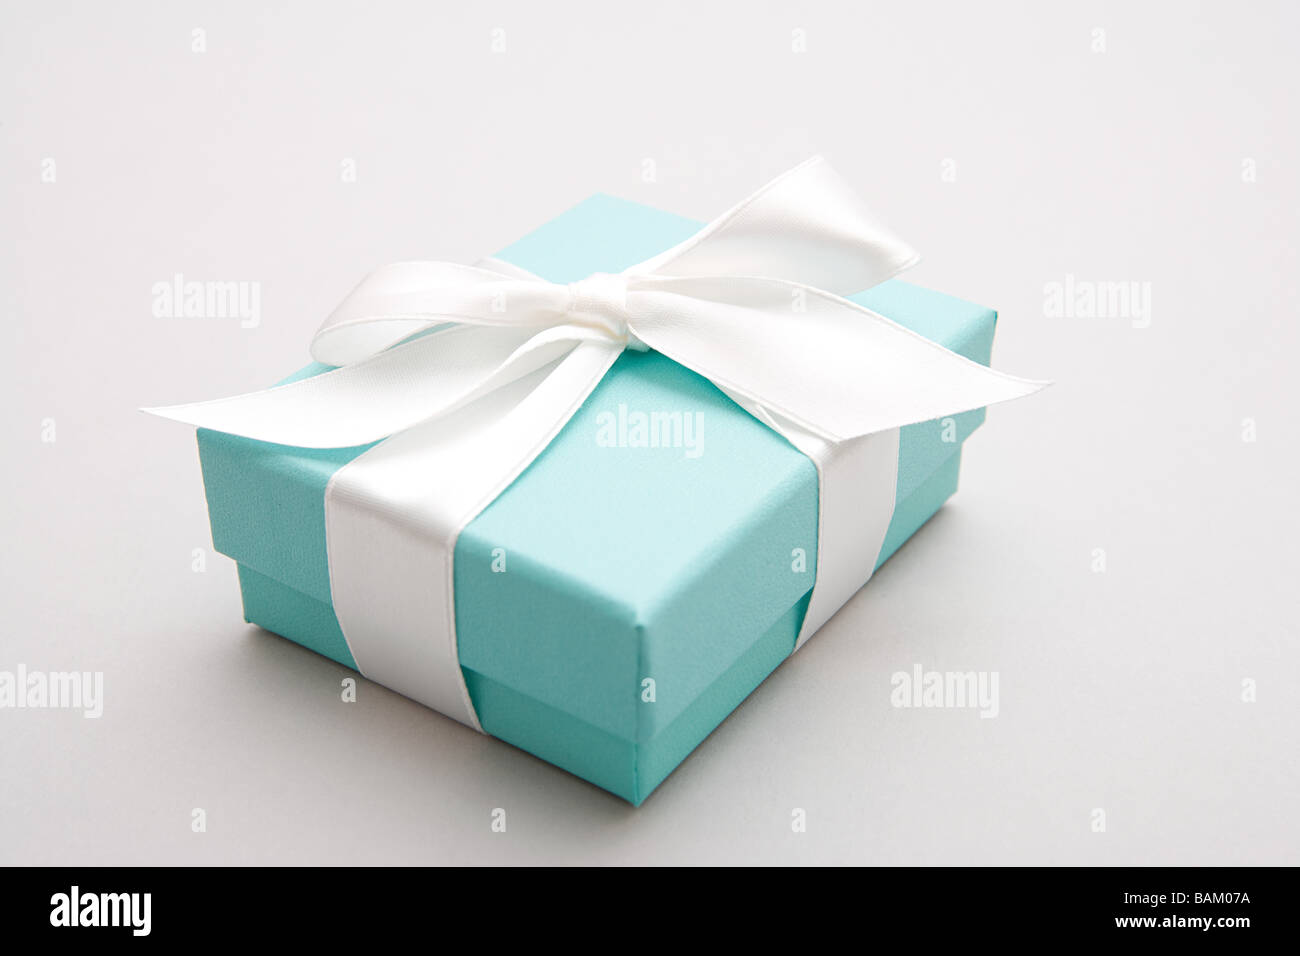 A gift - Stock Image